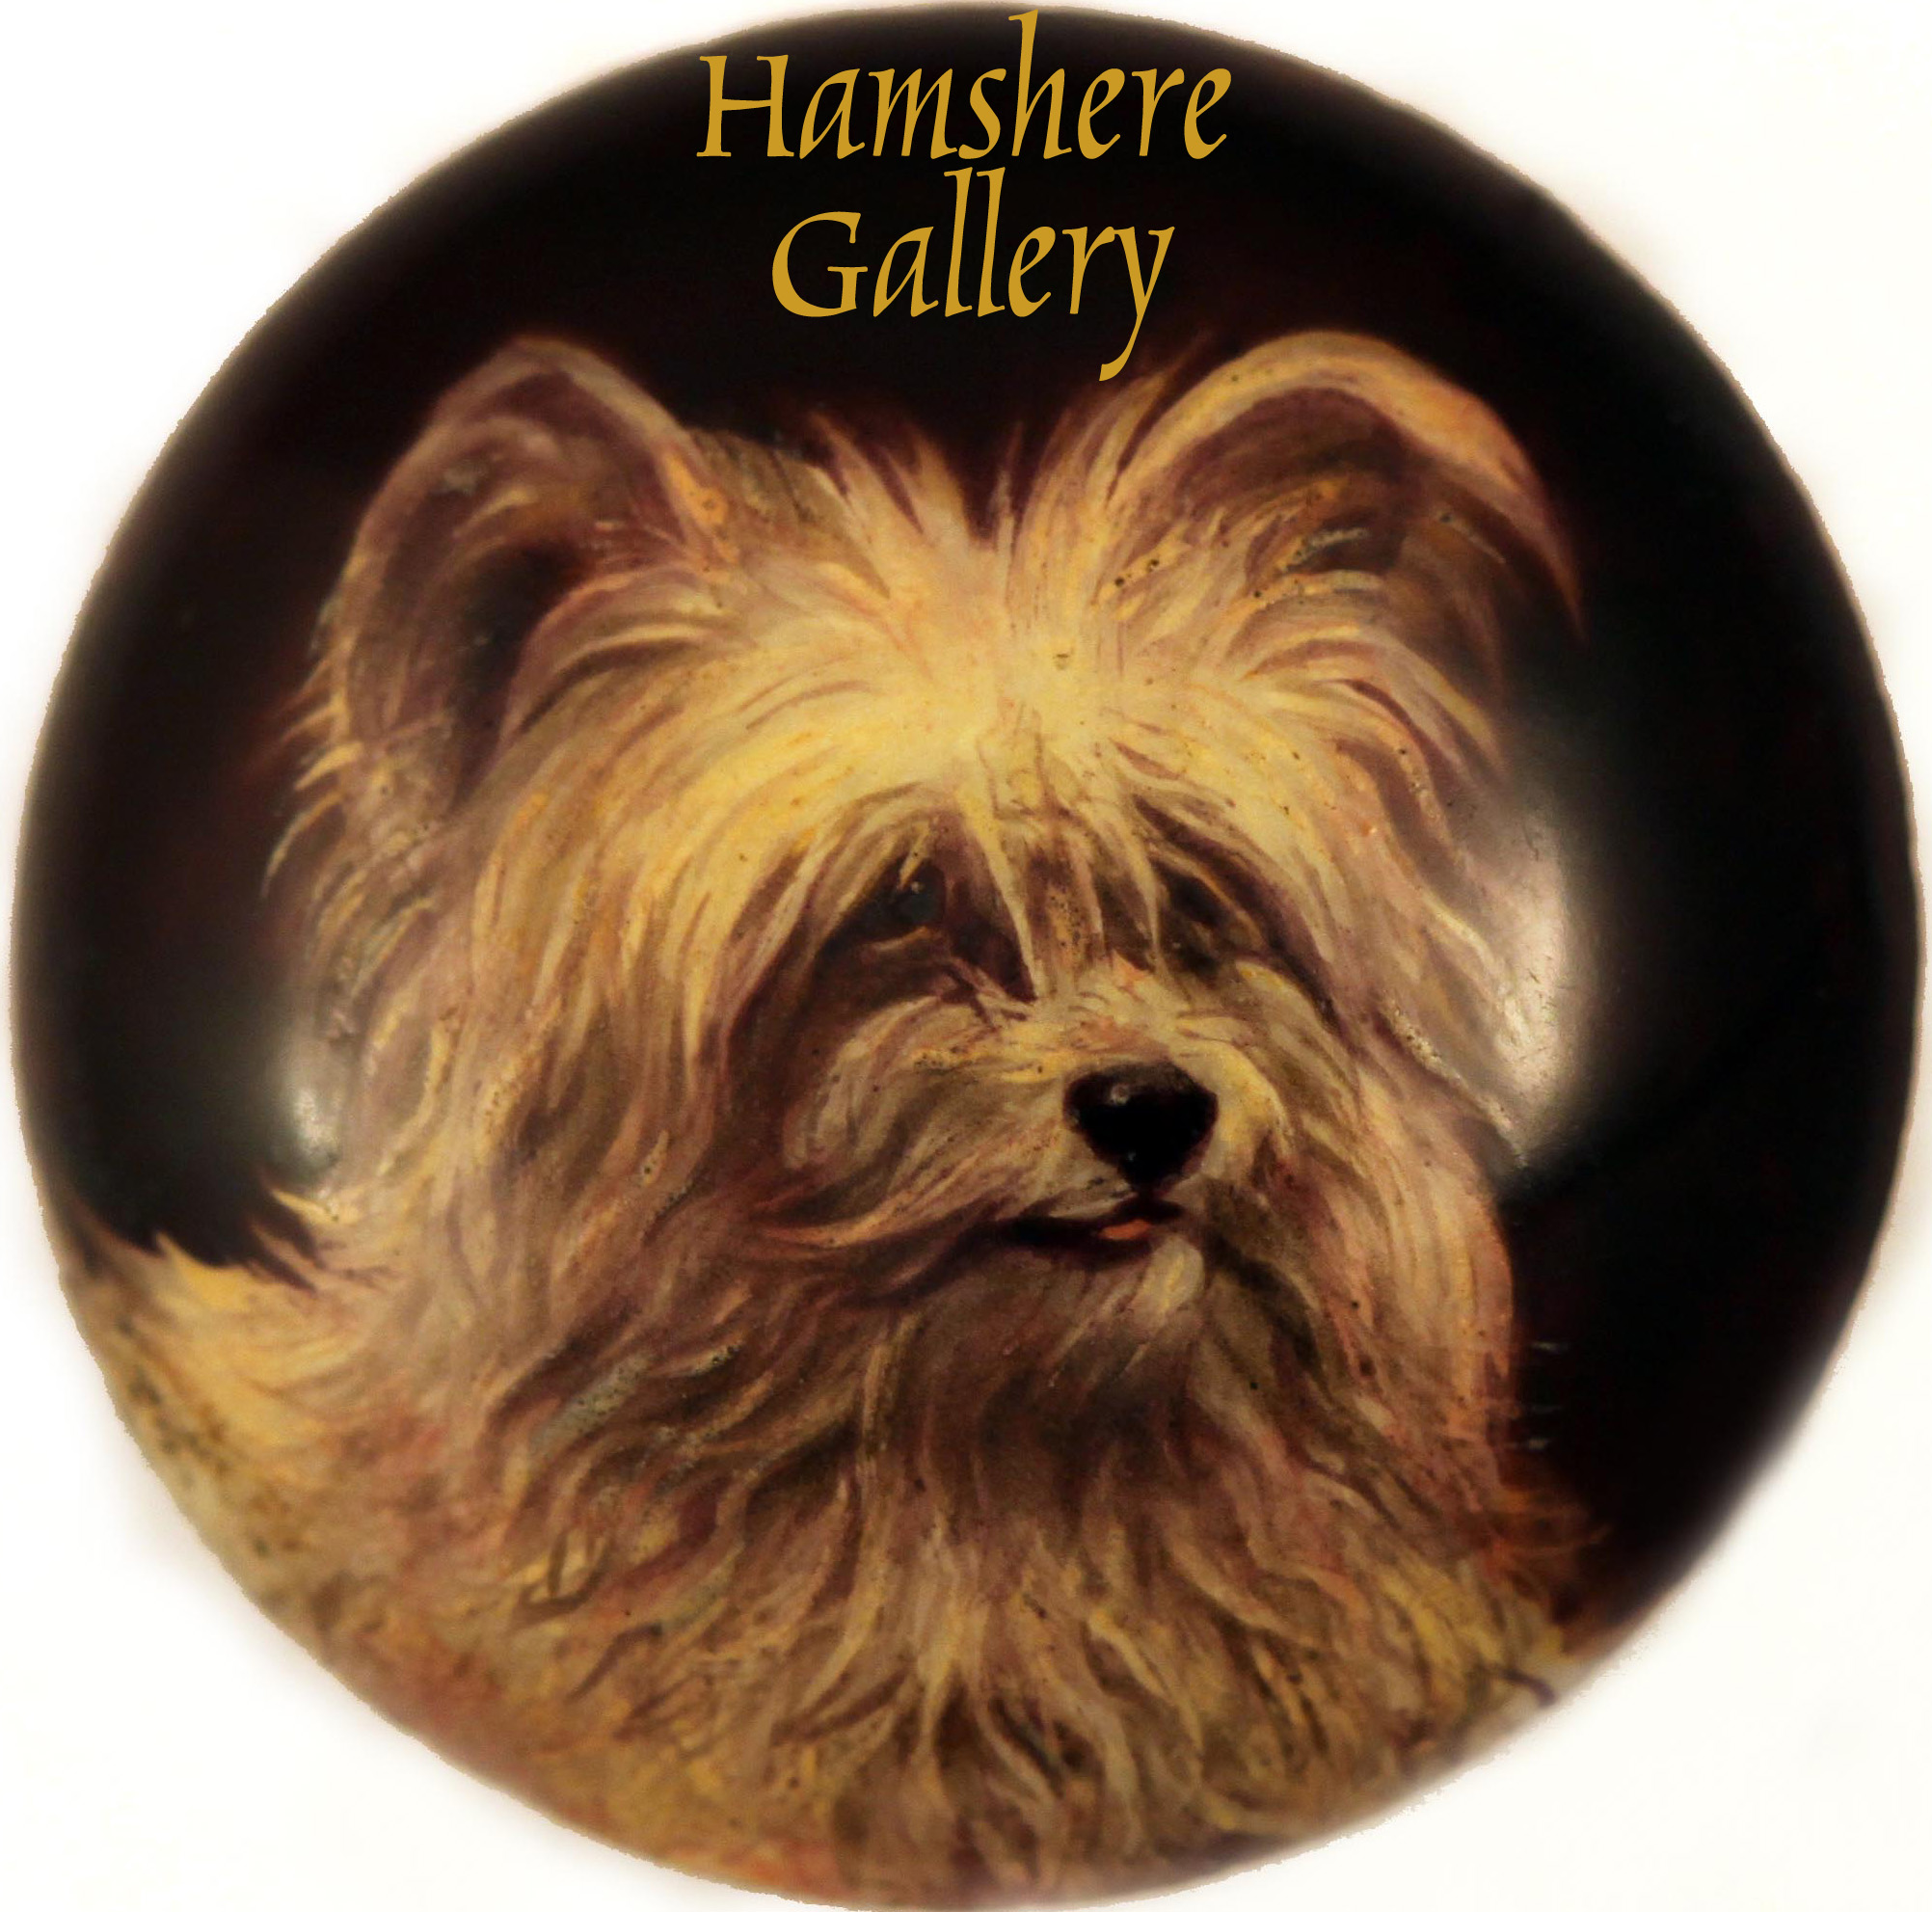 Click for larger image: Miniature in enamel of a Skye Terrier by William Page Simpson fl (English, 1845-1911) - Miniature in enamel of a Skye Terrier by William Page Simpson fl (English, 1845-1911)